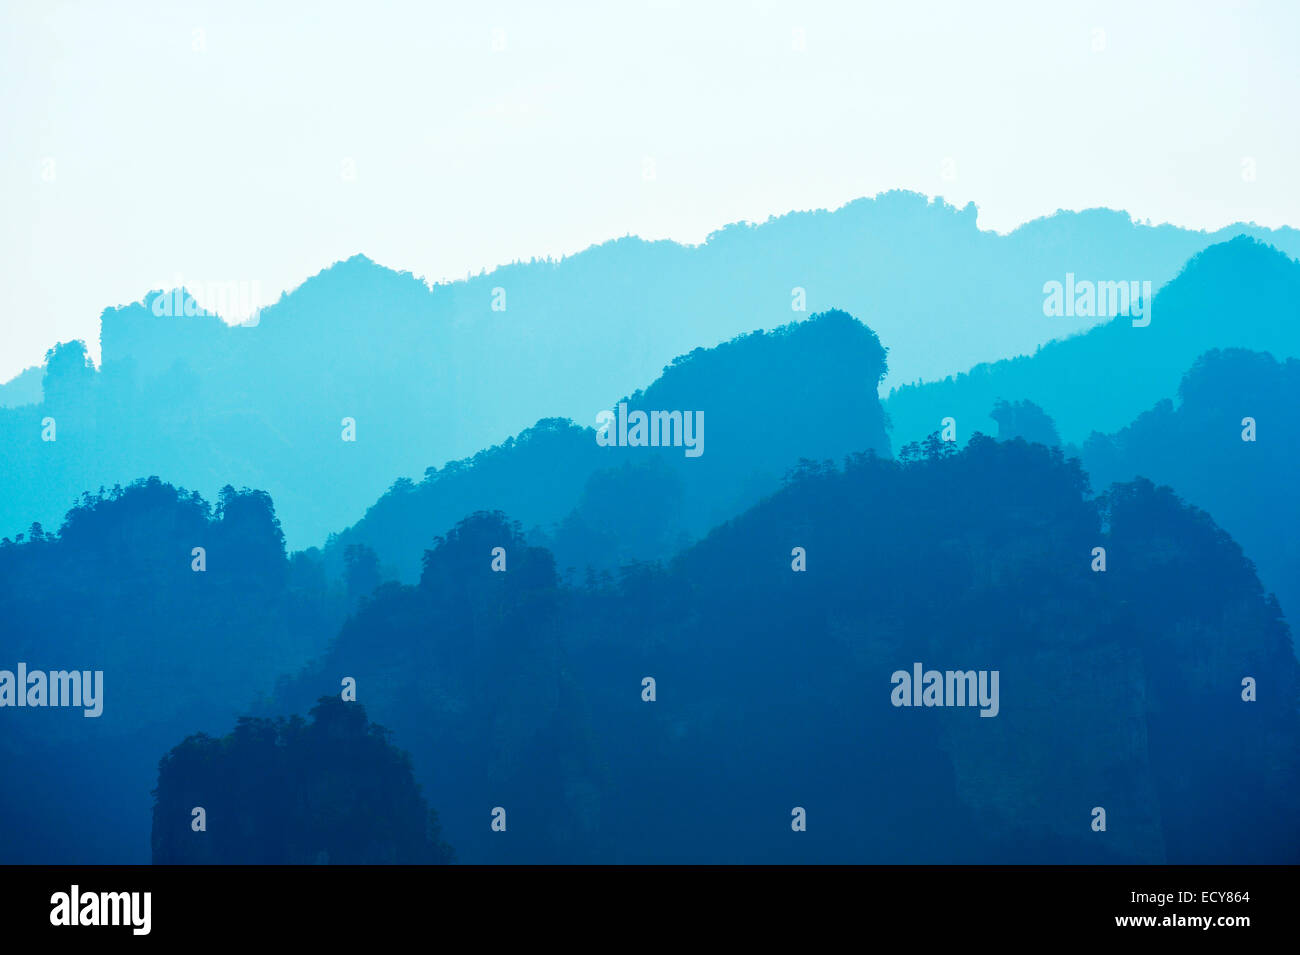 Silhouette of the 'Avatar' mountains, Zhangjiajie National Park, Hunan Province, China - Stock Image